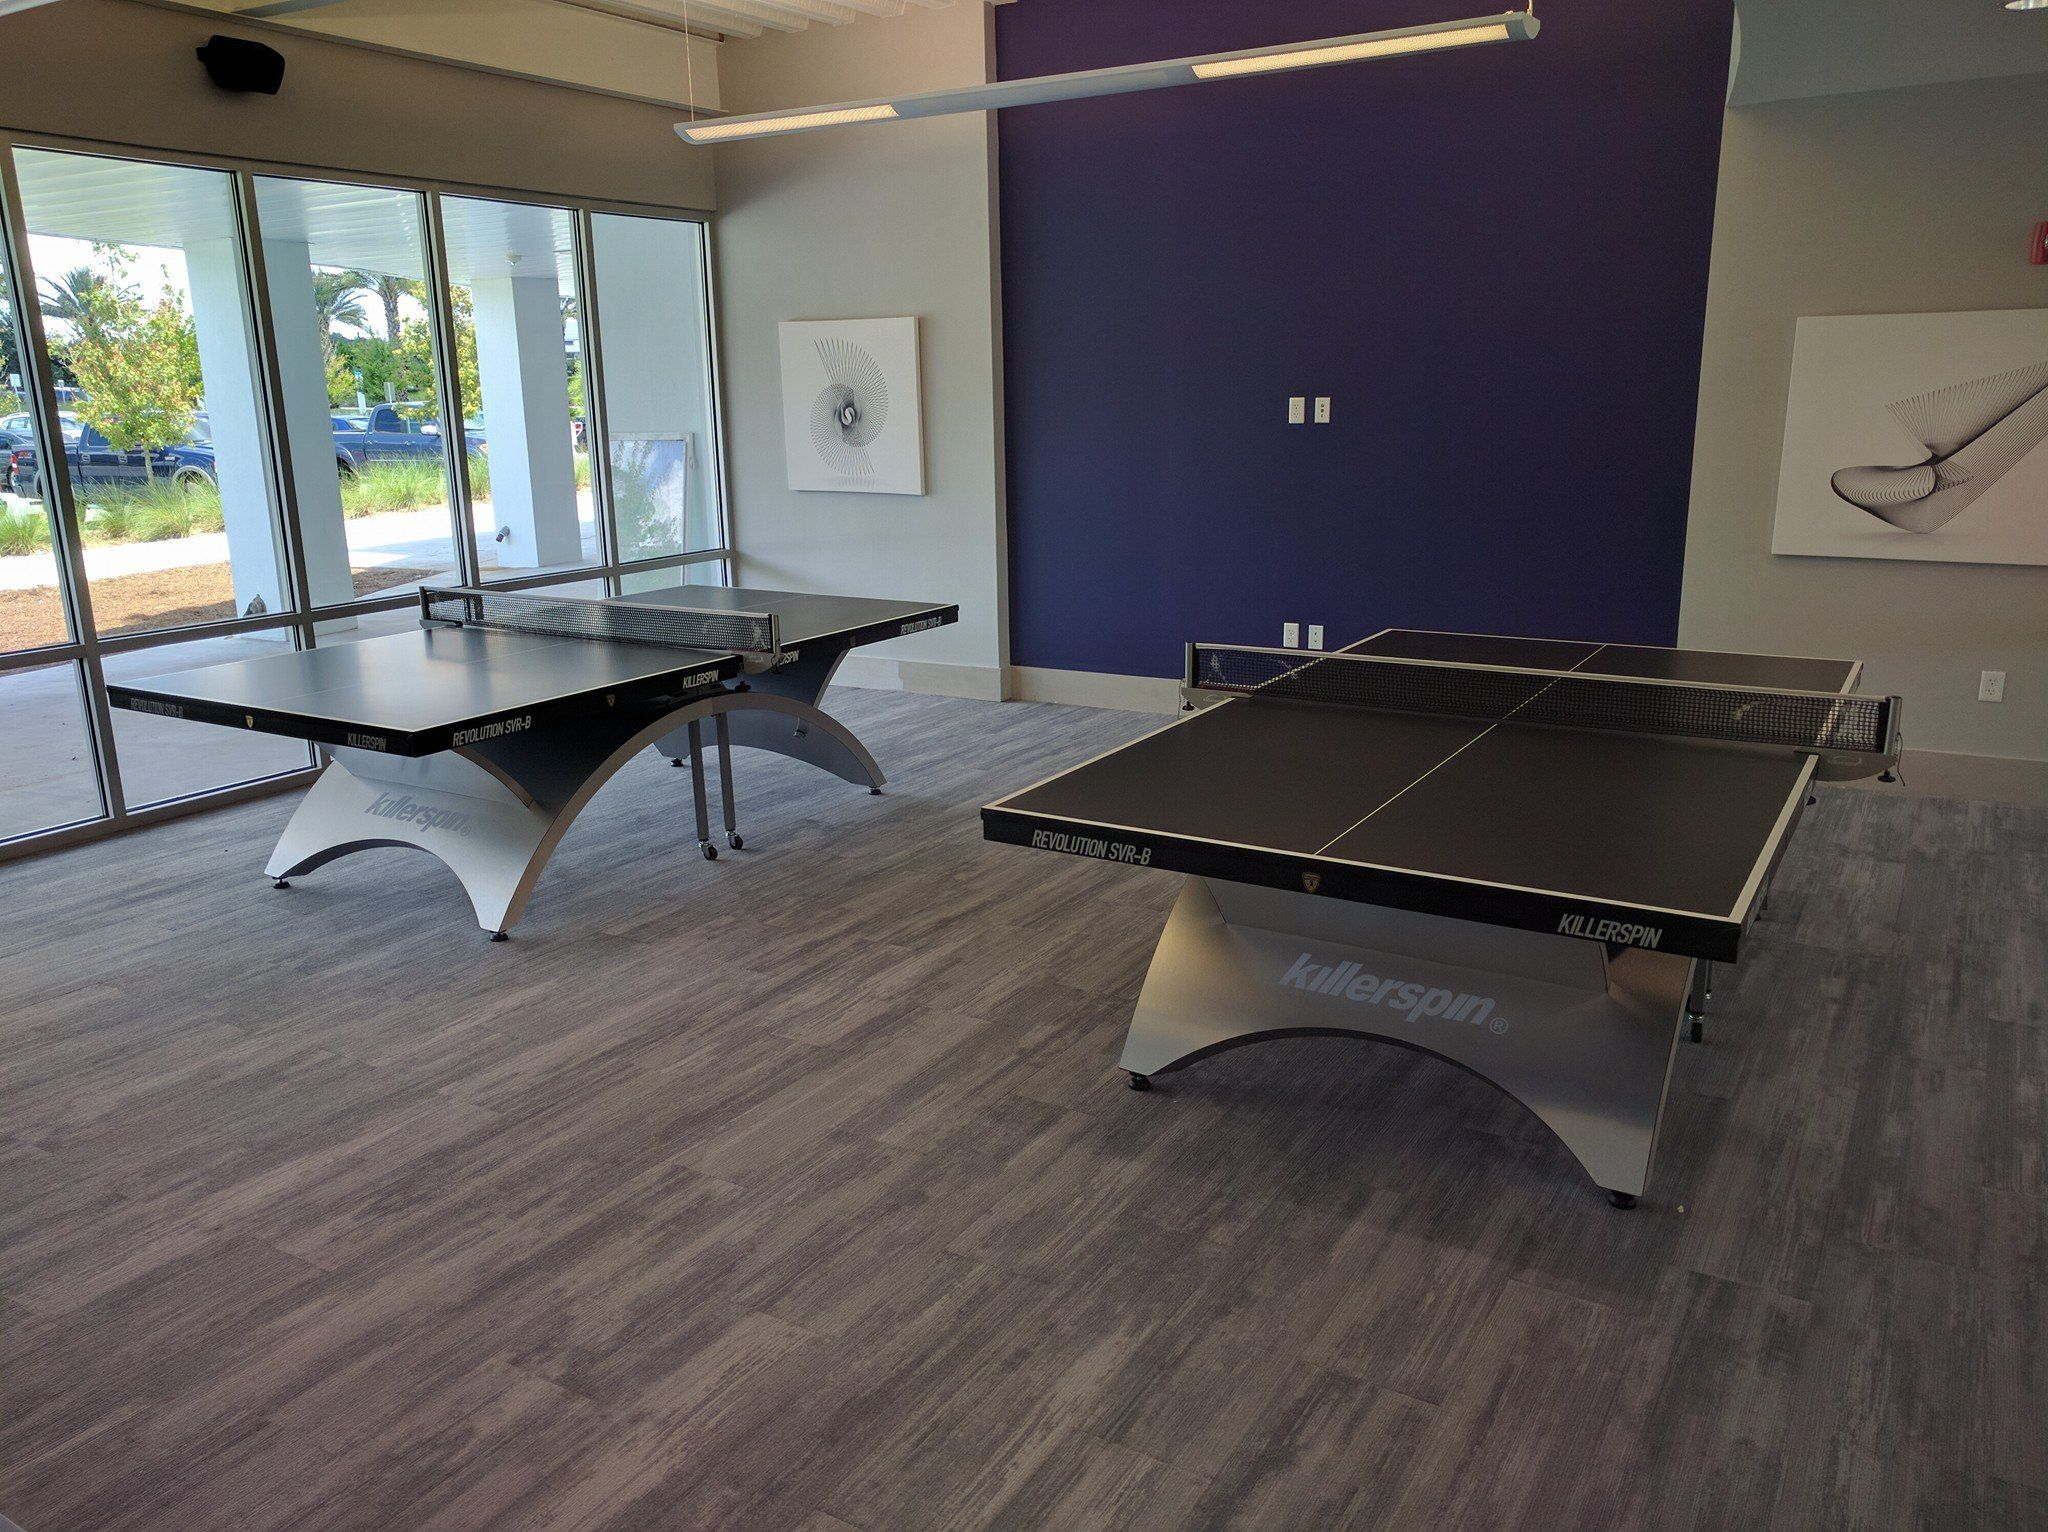 05bc9a422 Take a look at these two beautiful killerspin table tennis tables! http